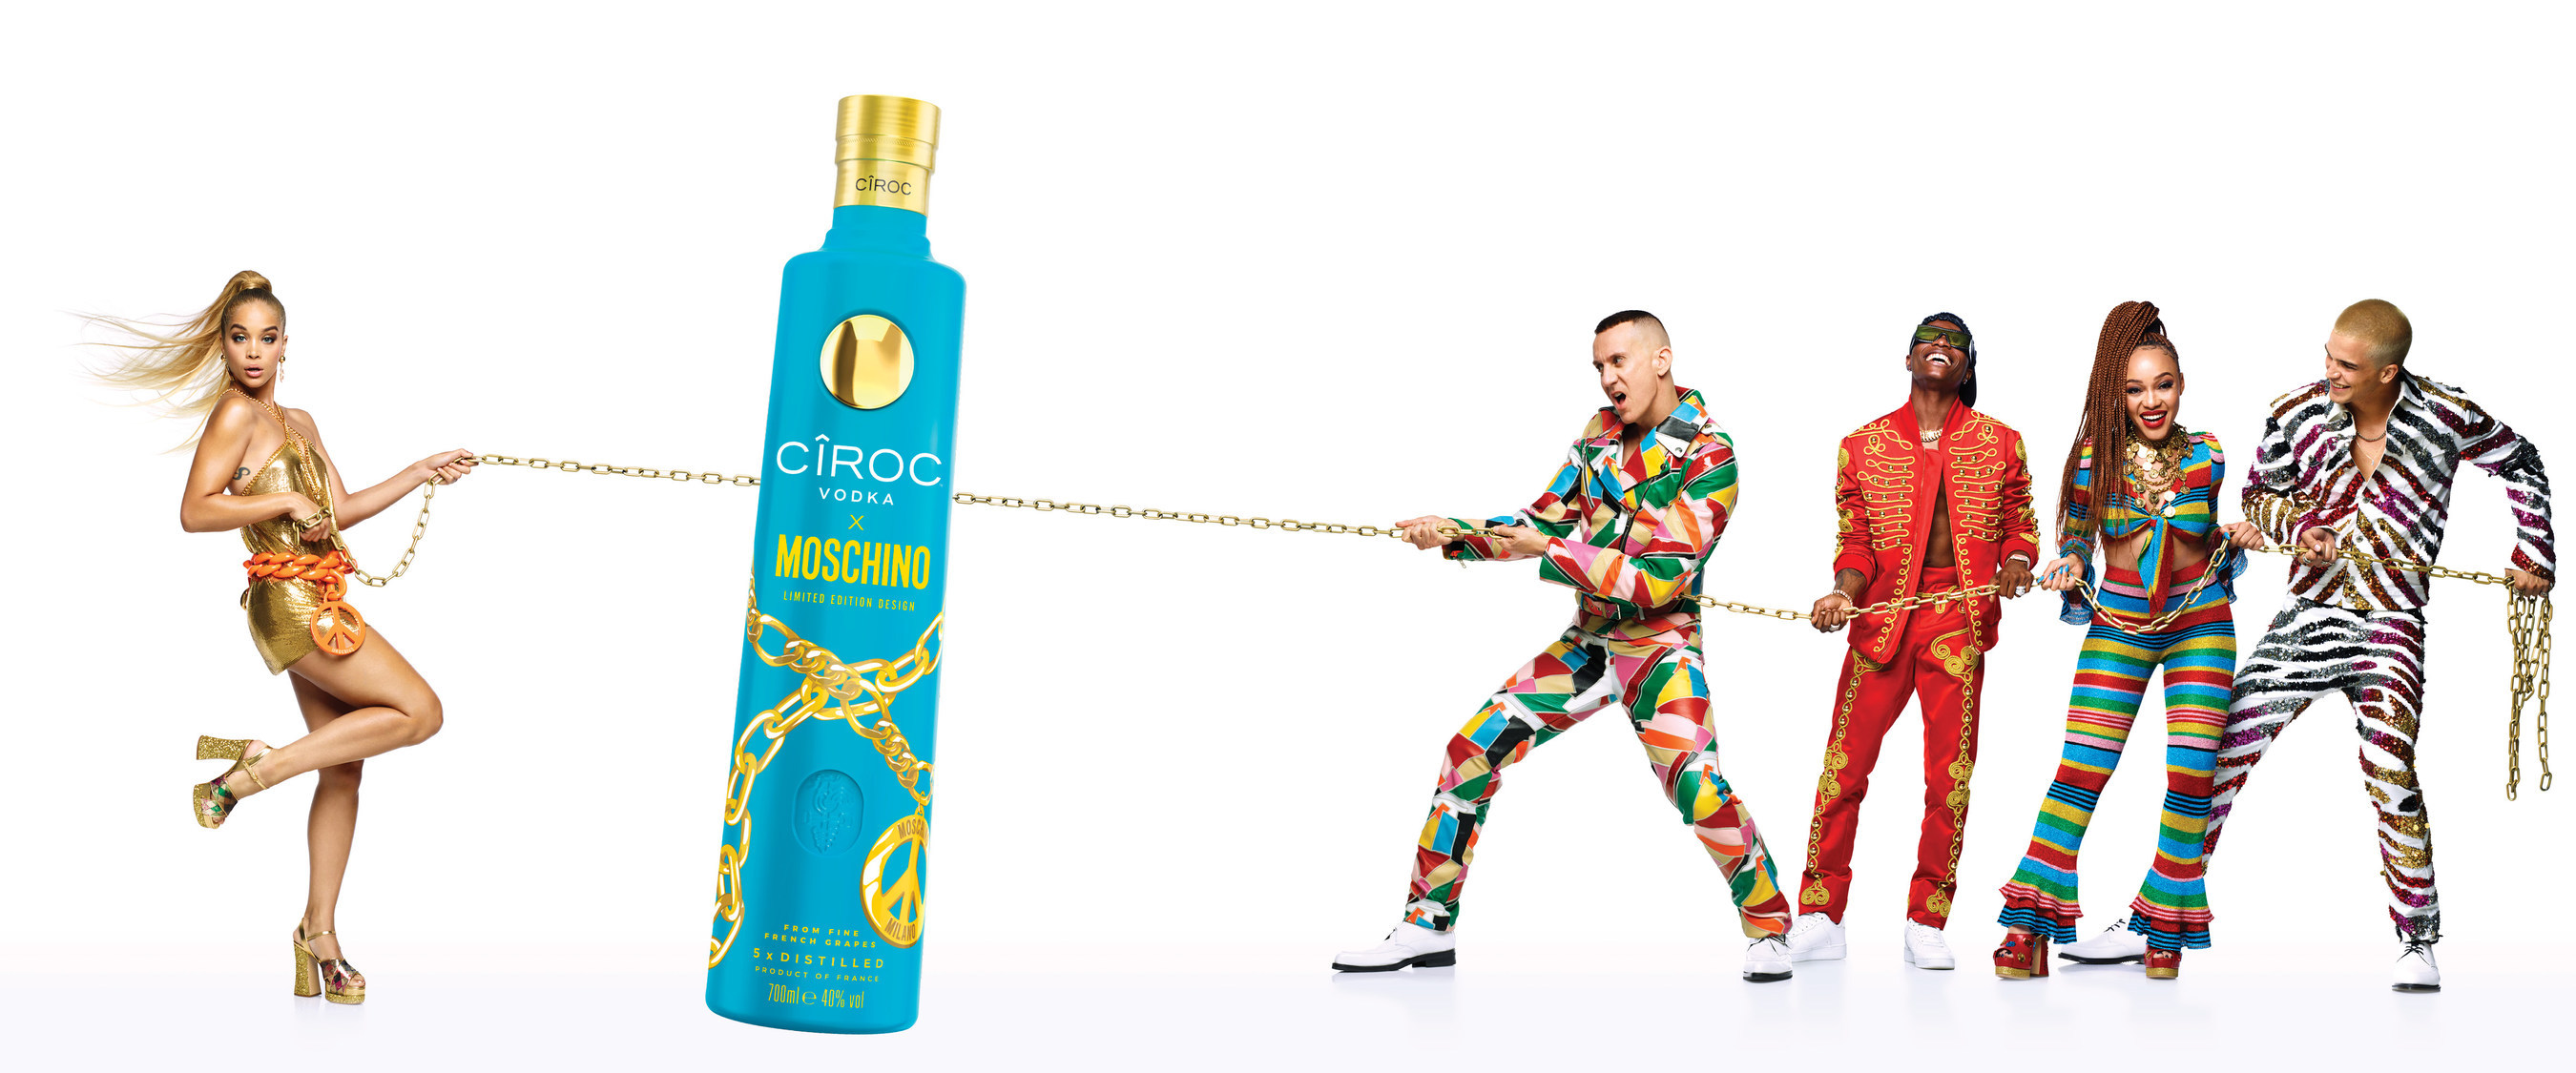 The CÃŽROC X Moschino LIMITED EDITION BOTTLE launches at Milan Fashion as part of the playful collaboration (PRNewsfoto/Ciroc Vodka)